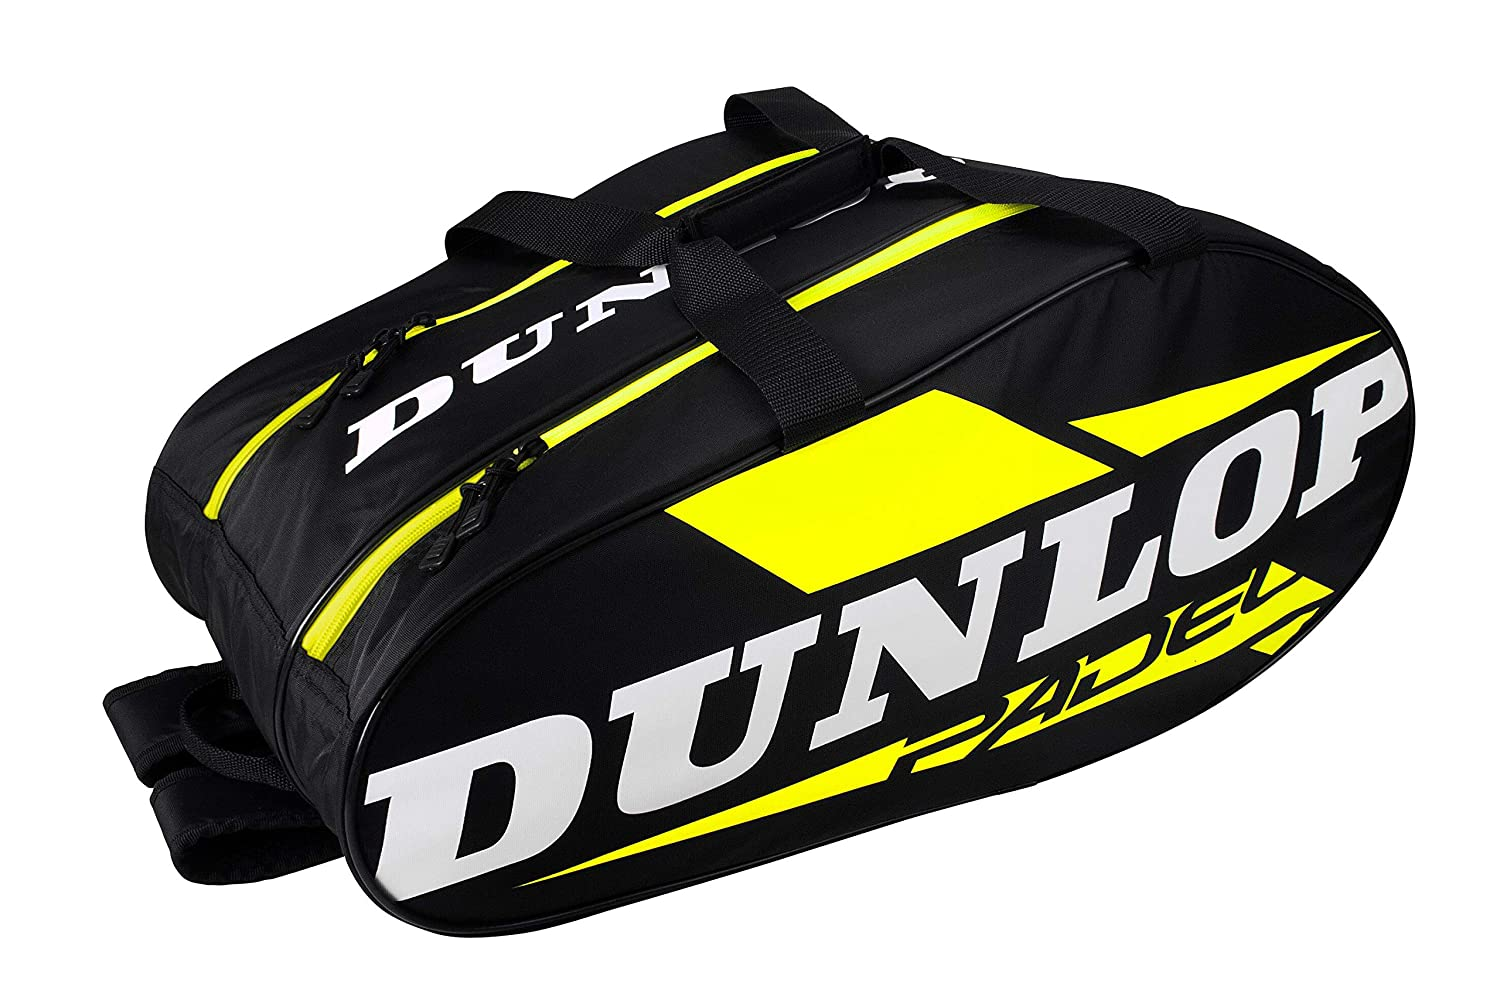 Dunlop Paletero Play, Adultos Unisex, Multicolor, Talla Unica ...